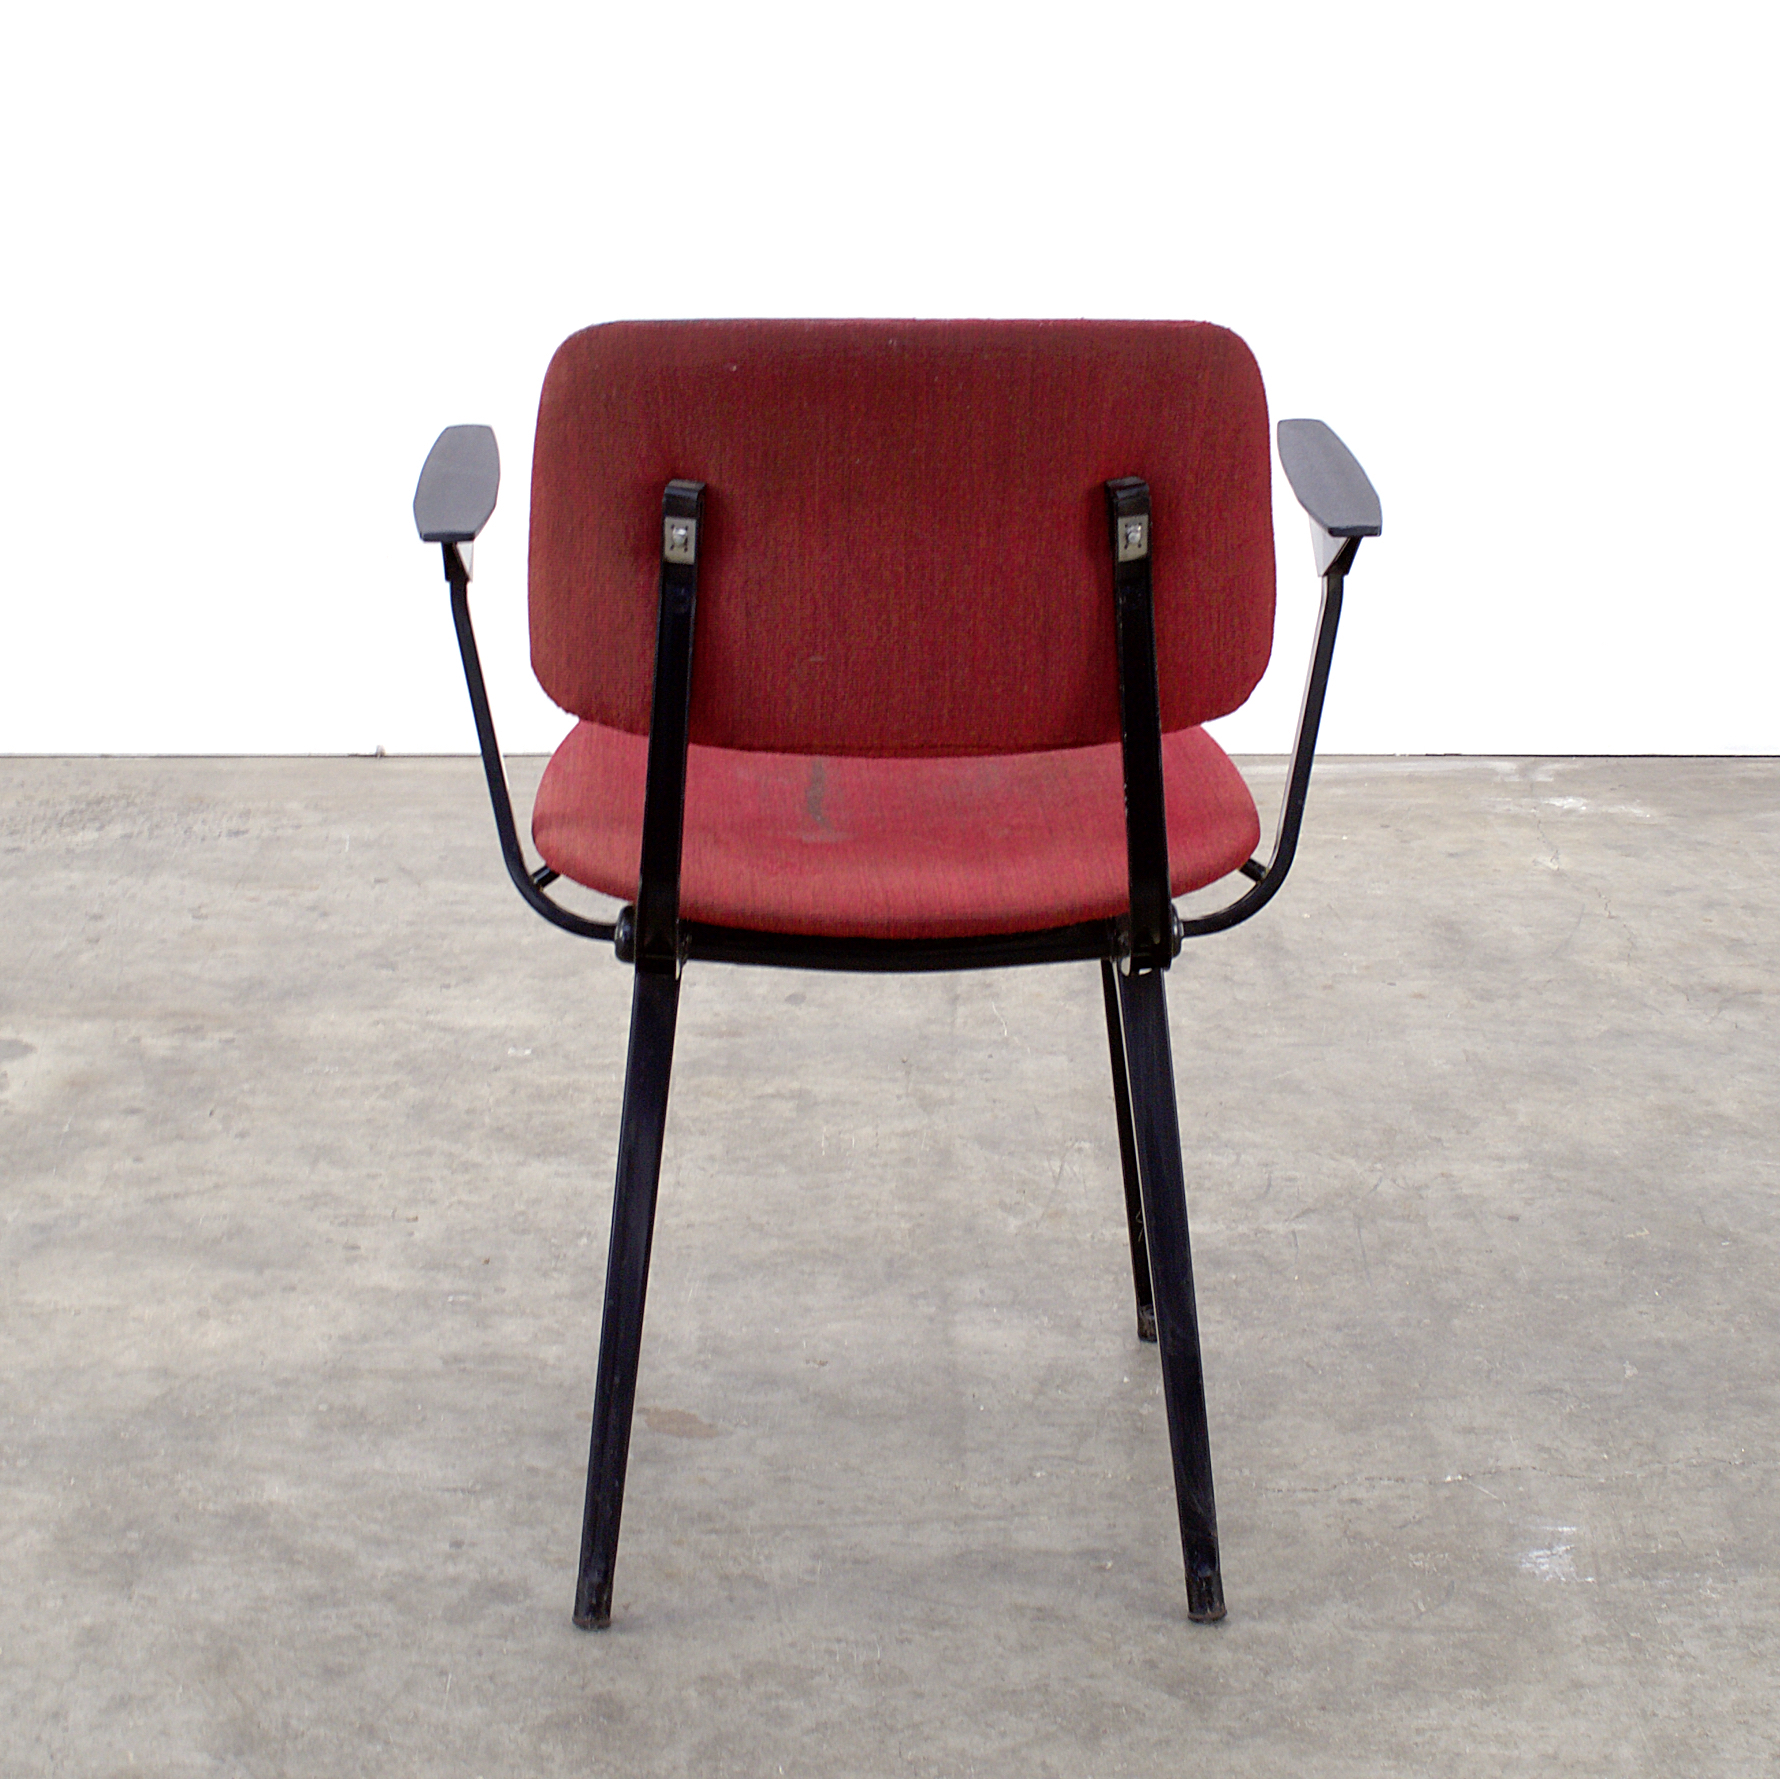 0716116ZST Friso Kramer Revolt Office Chair Stoel Vintage Design